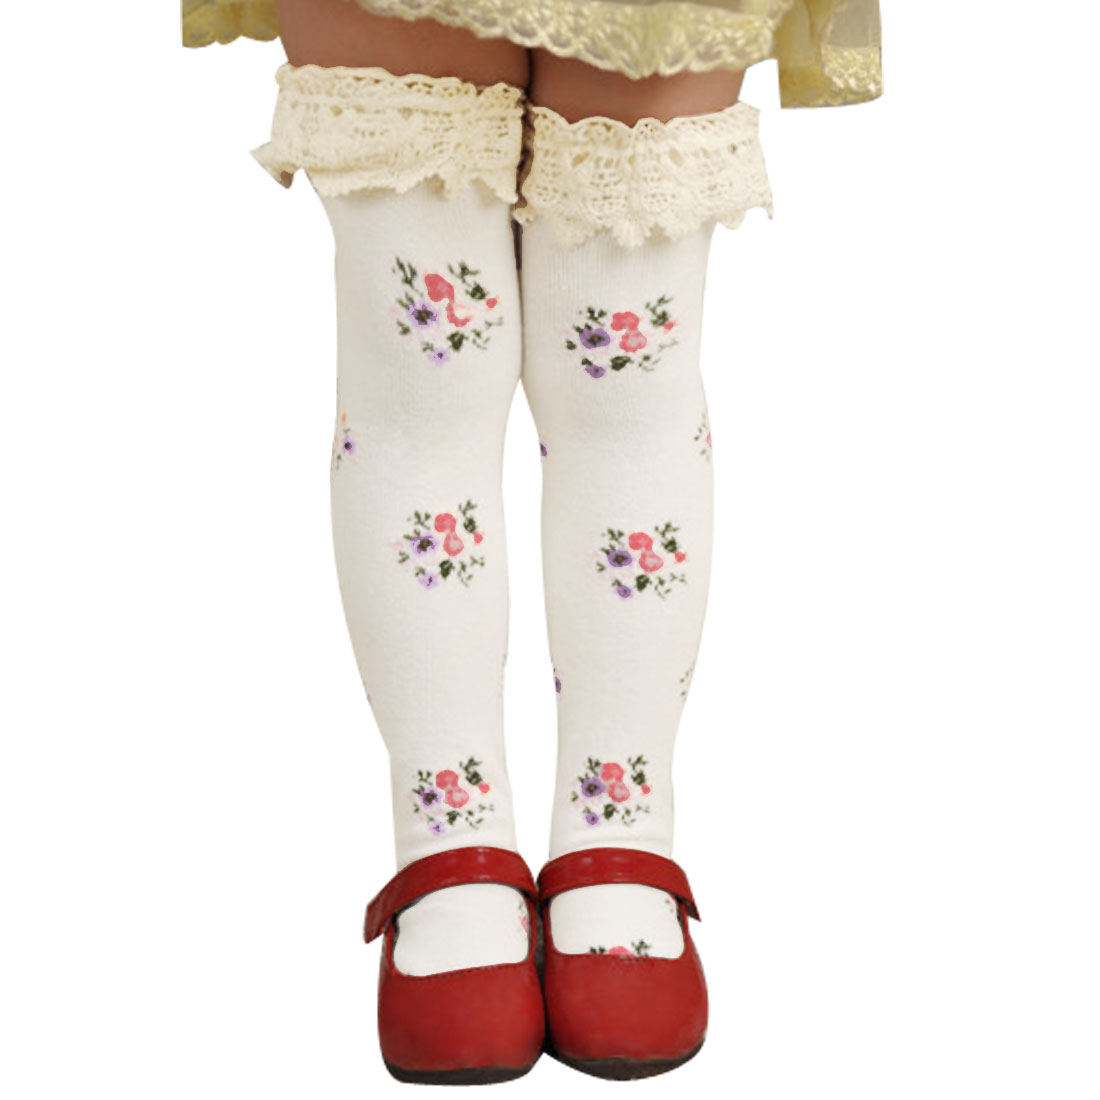 Grils Charming Textured Stretch Cuff Footwear Lace Knee Socks Tights White